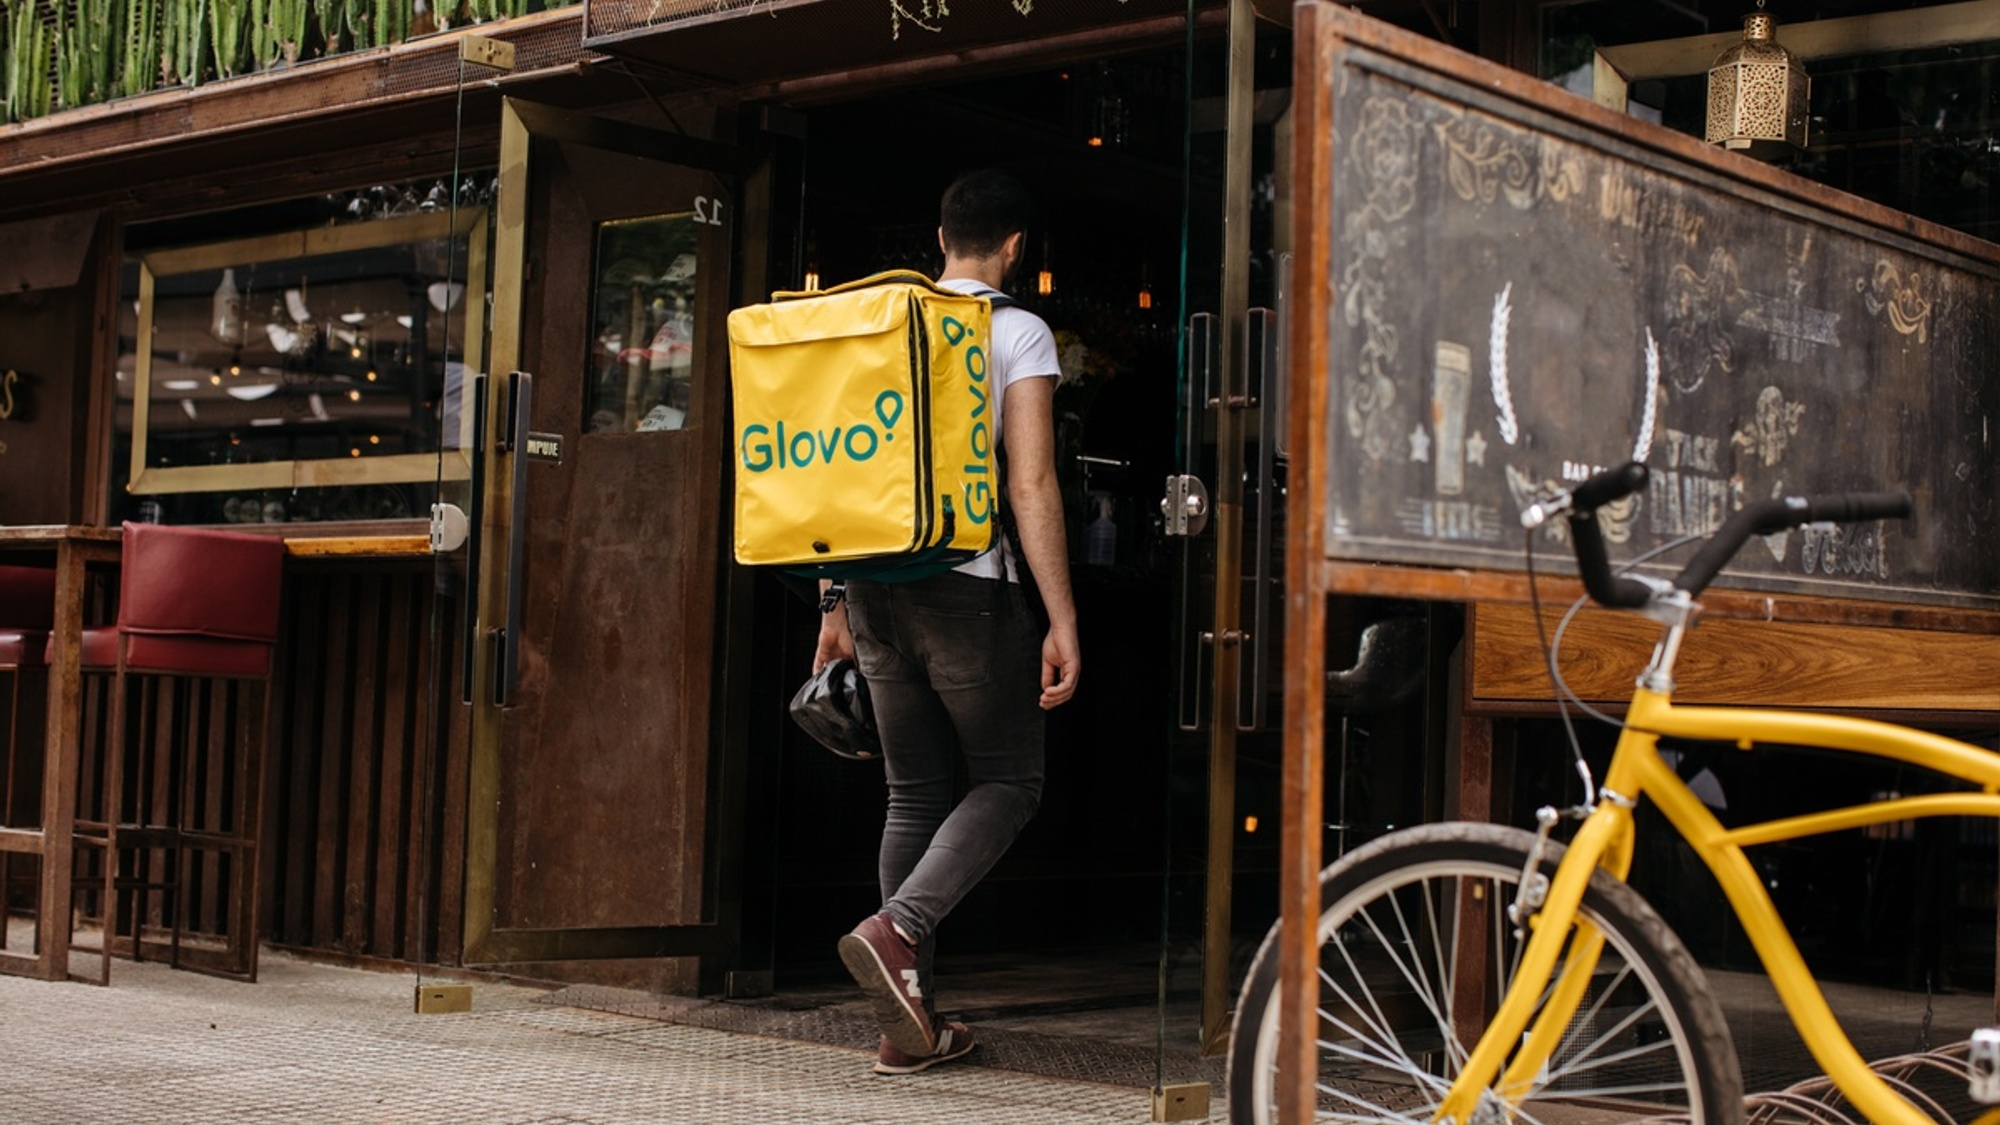 Glovo raises €450M in Series F funding round led by Lugard Road Capital and Luxor Capital Group